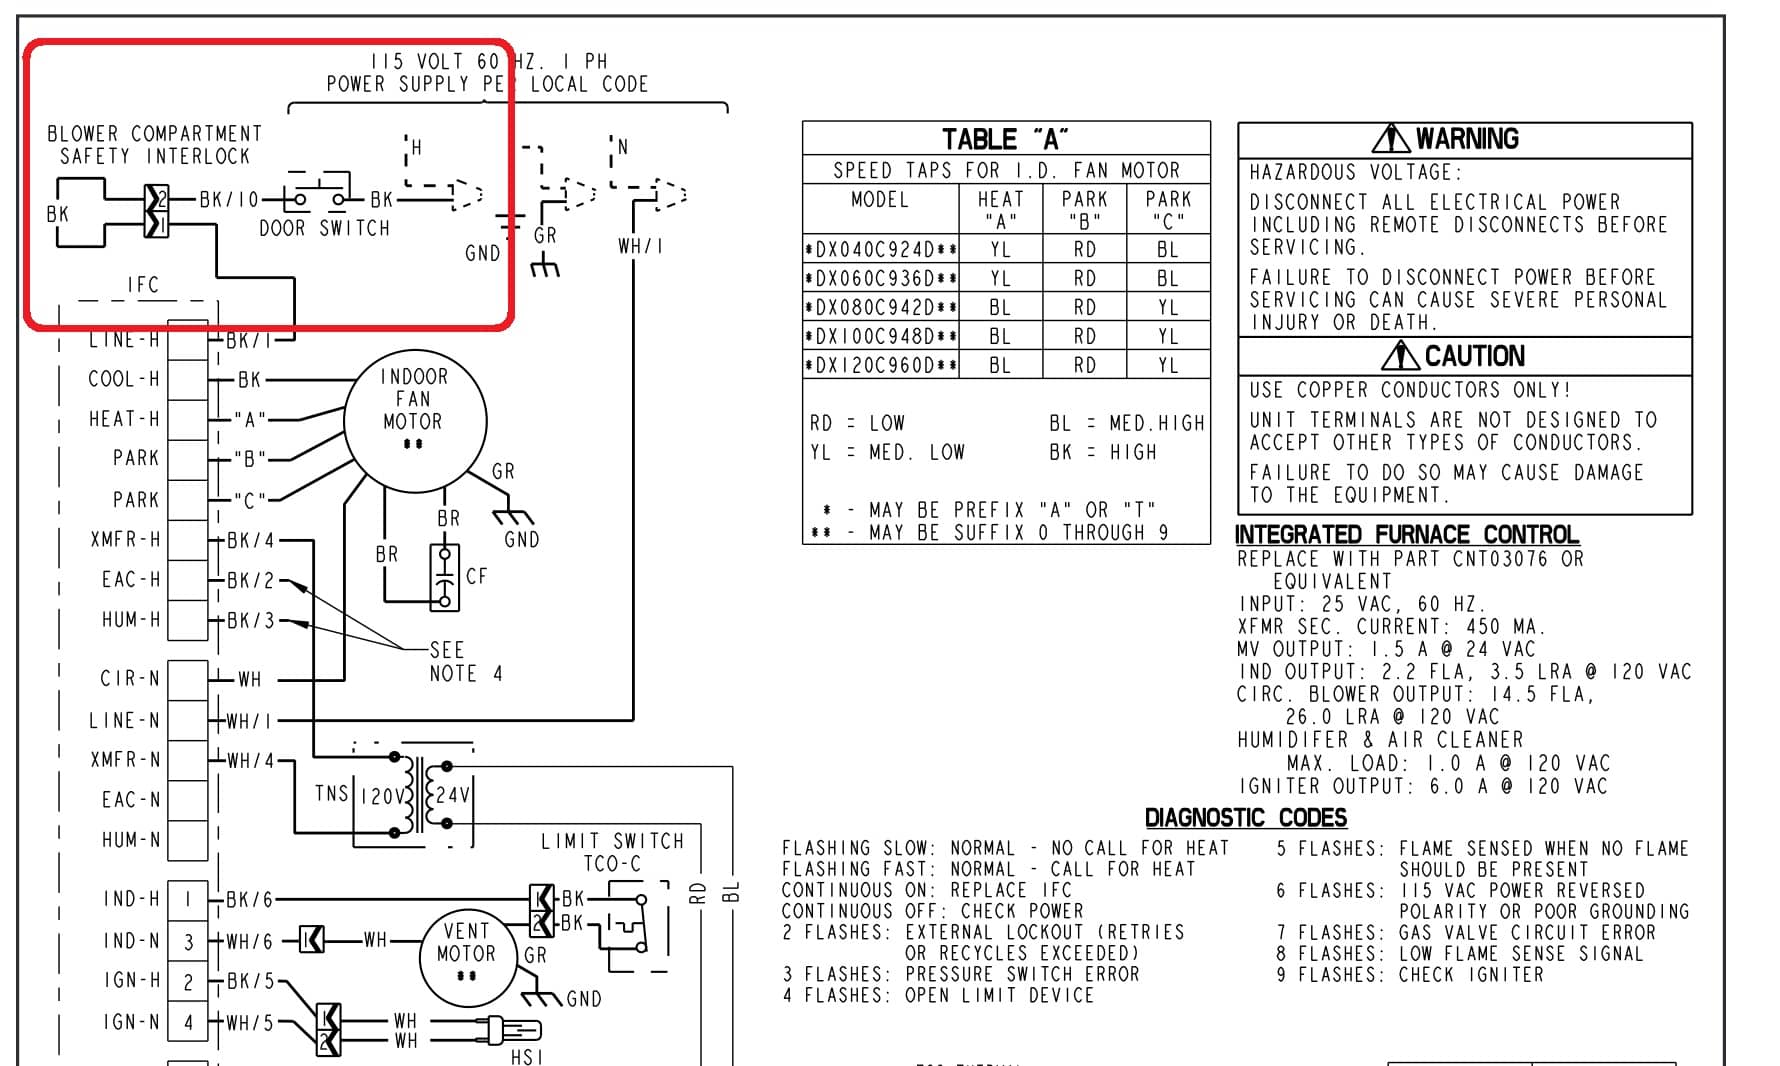 Trane_Furnace_Wiring_PARTIAL_023 trane xr90 wiring diagram trane xr90 owners manual \u2022 wiring trane wiring diagram thermostat at soozxer.org